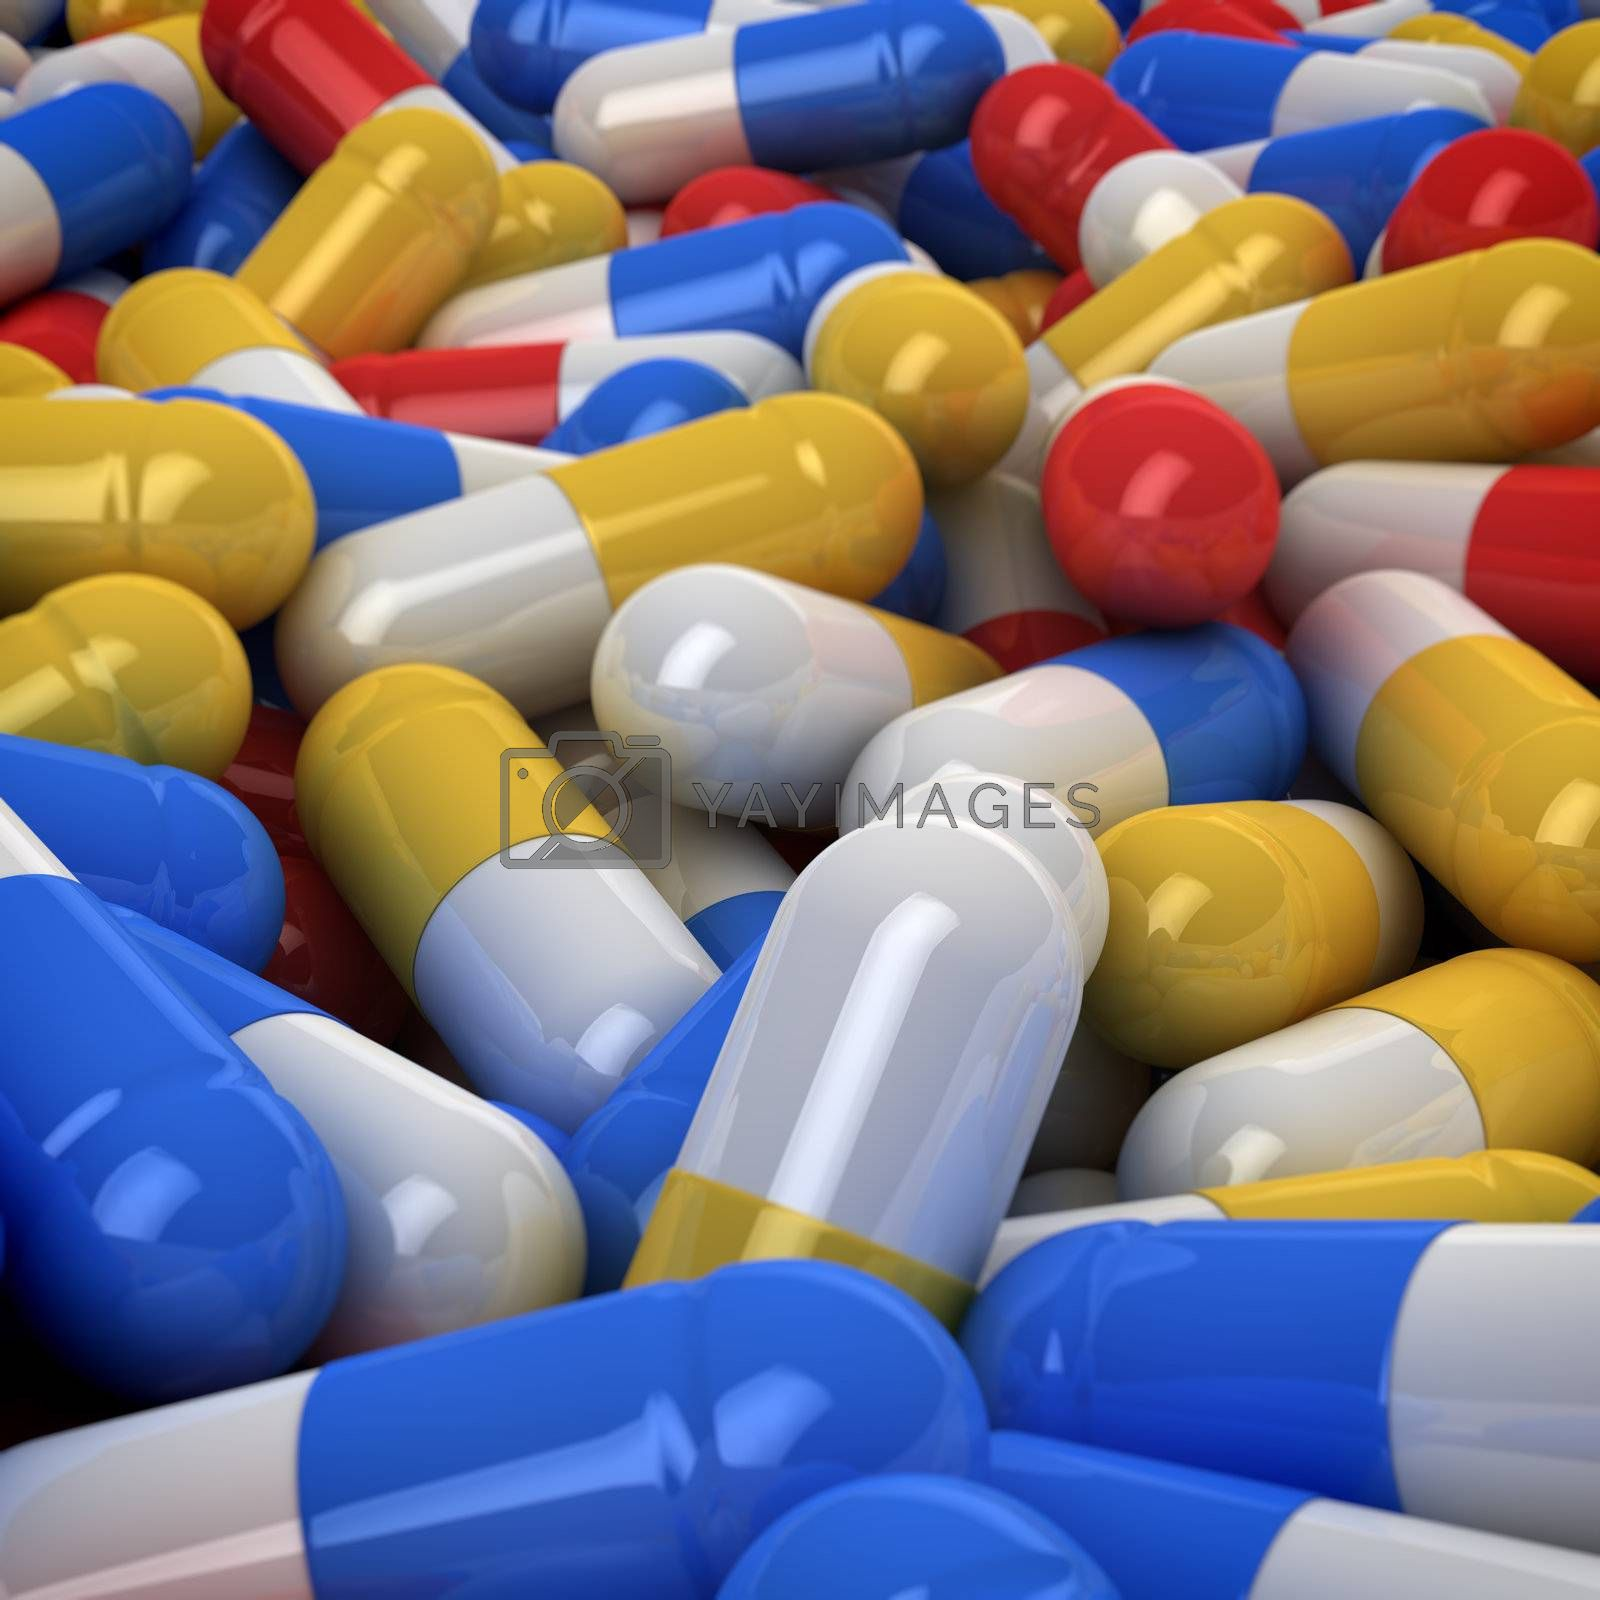 Multicolored capsules background, 3d computer graphic